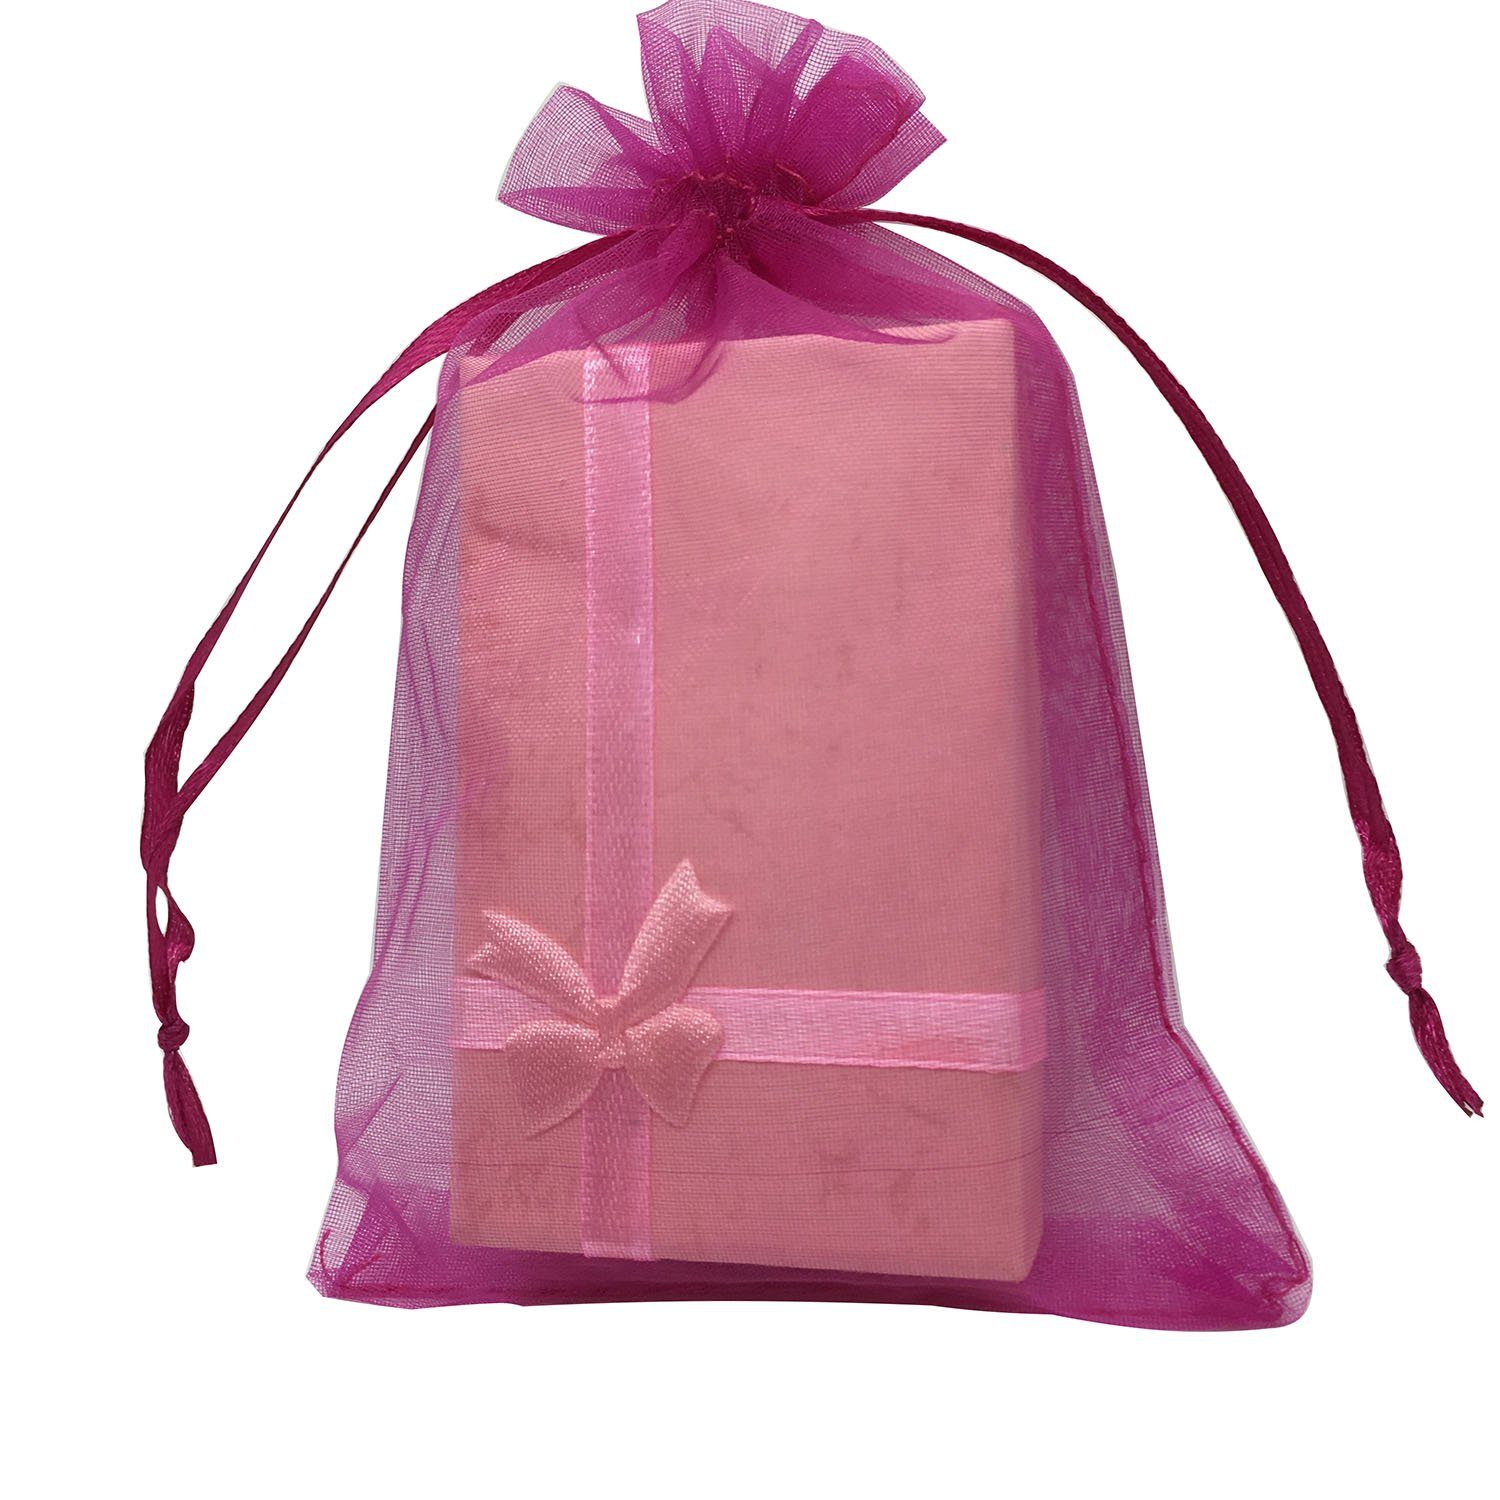 MELUOGE 100pcs 5X7 Inches Organza Drawstring Jewelry Pouches Bags Party Wedding Favor Gift Bags Candy Bags (Hot Pink)